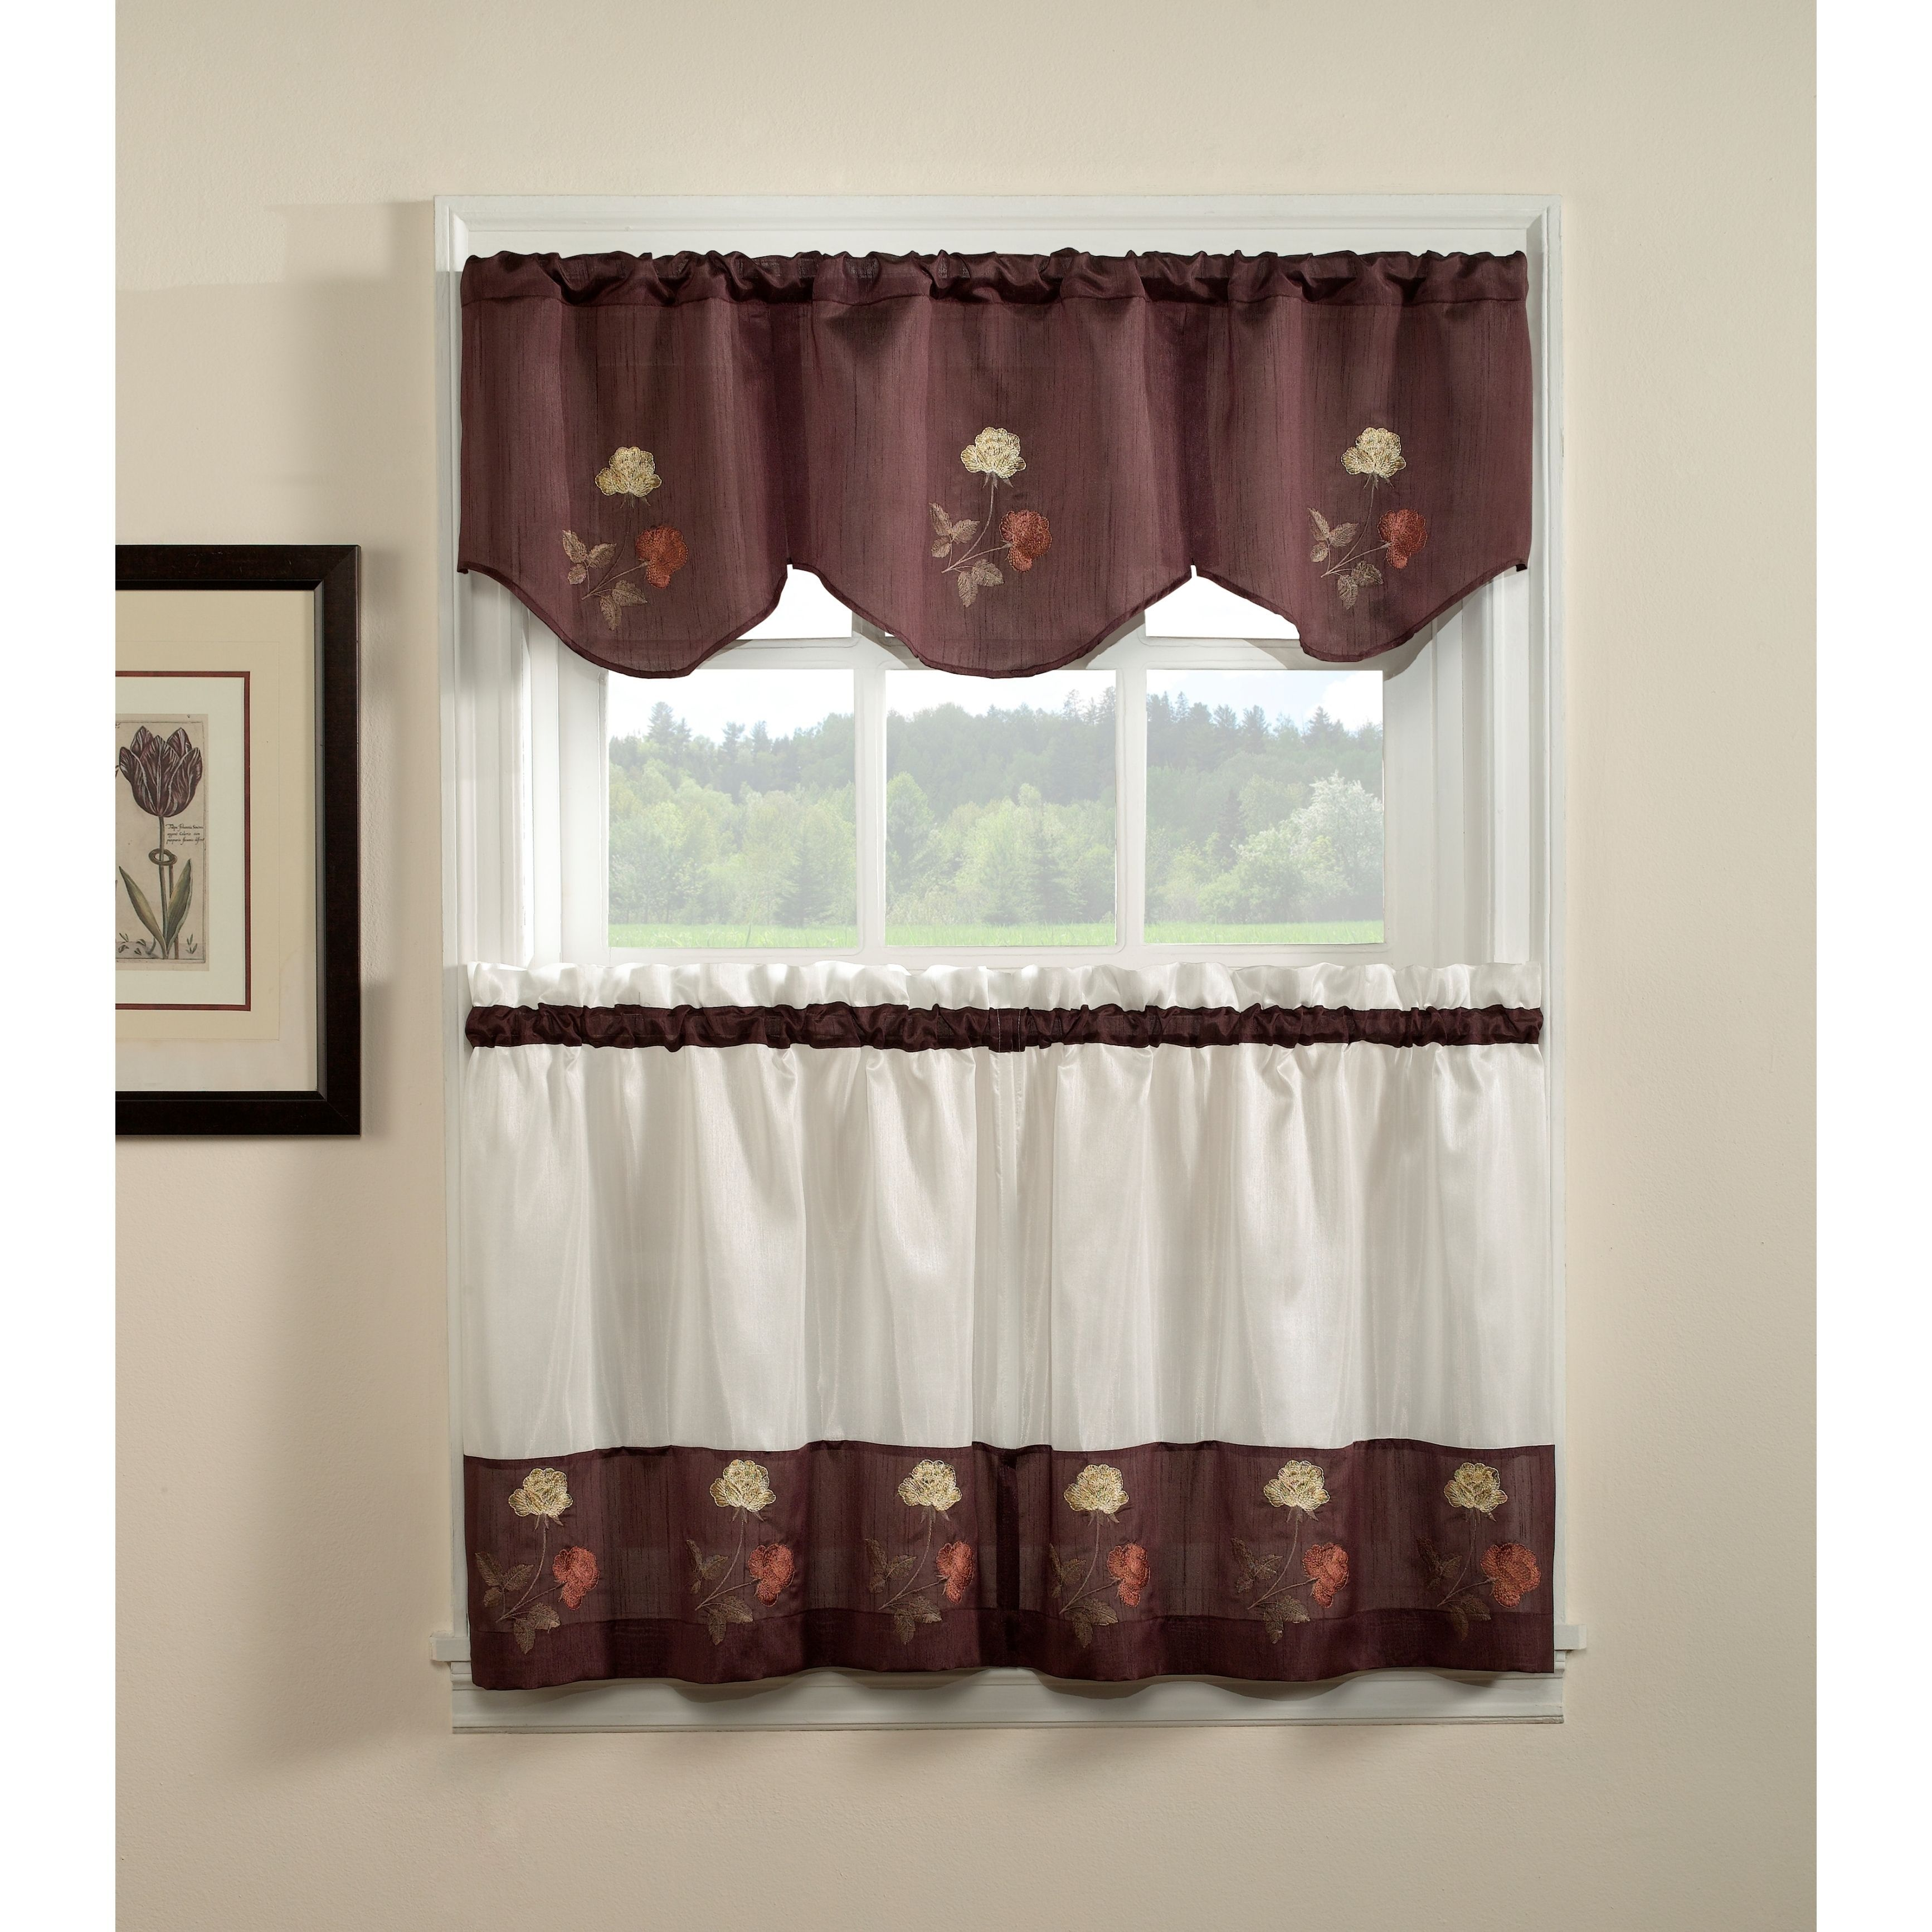 marvelous Brown Tier Curtains Part - 4: Rose 3-piece Curtain Tier and Valance Set (36 inch), Brown (All Polyester,  Floral)